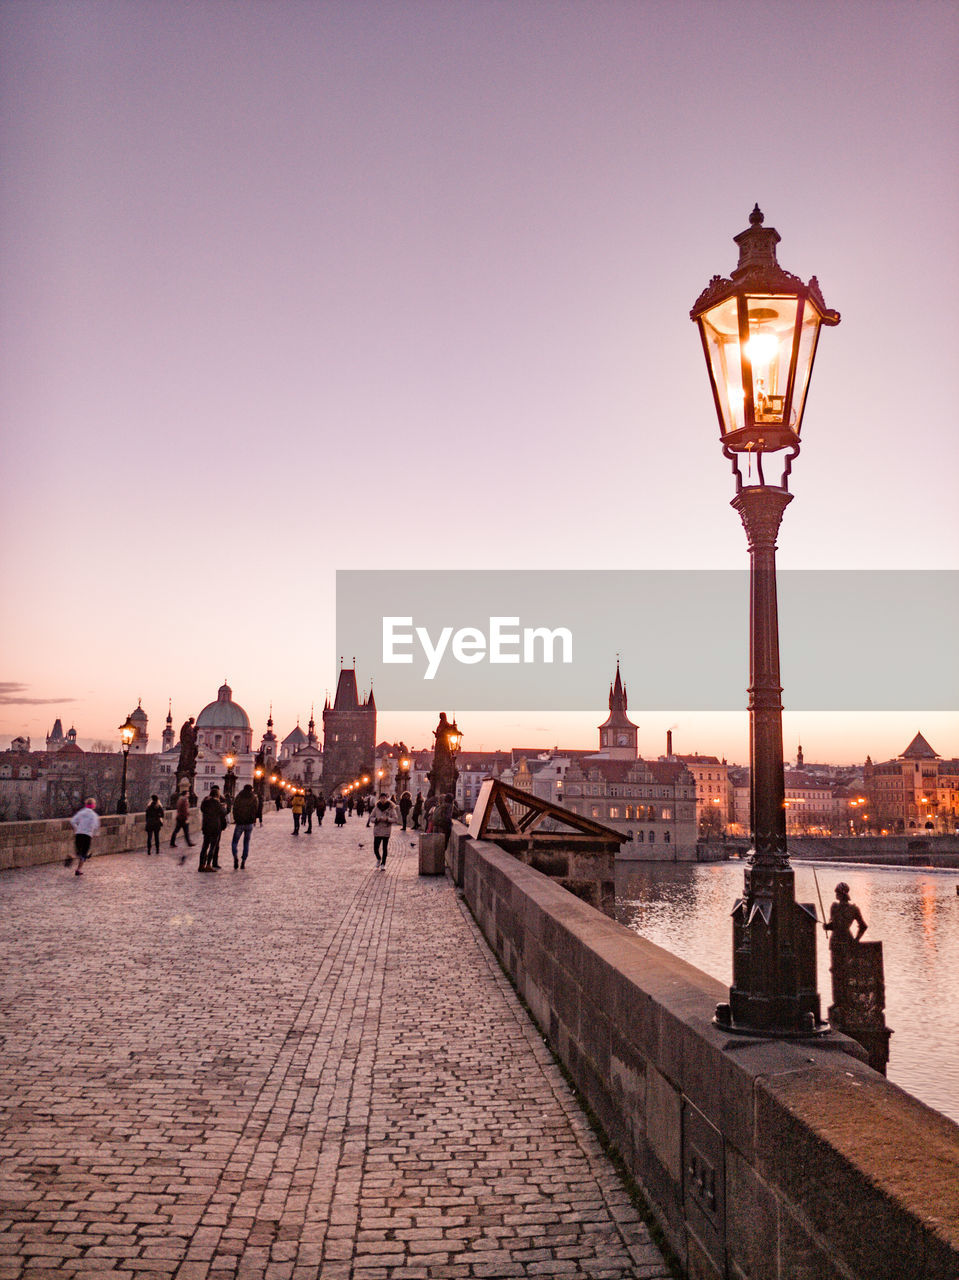 People on street light in city at sunset